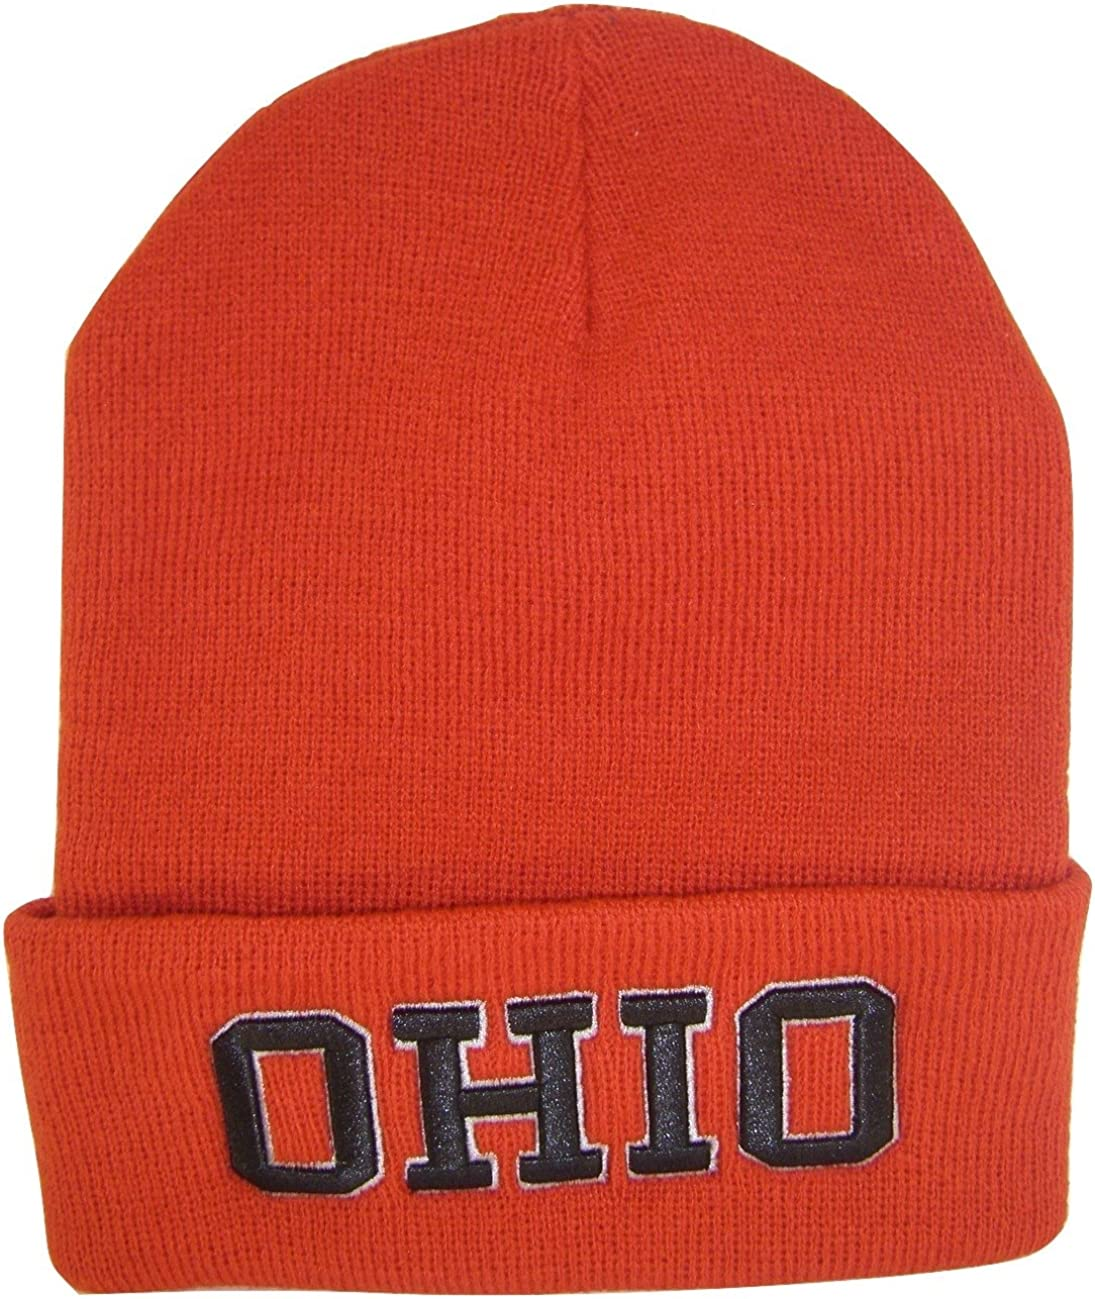 BVE Sports Novelties Ohio Adult Size Winter Knit Beanie Hats